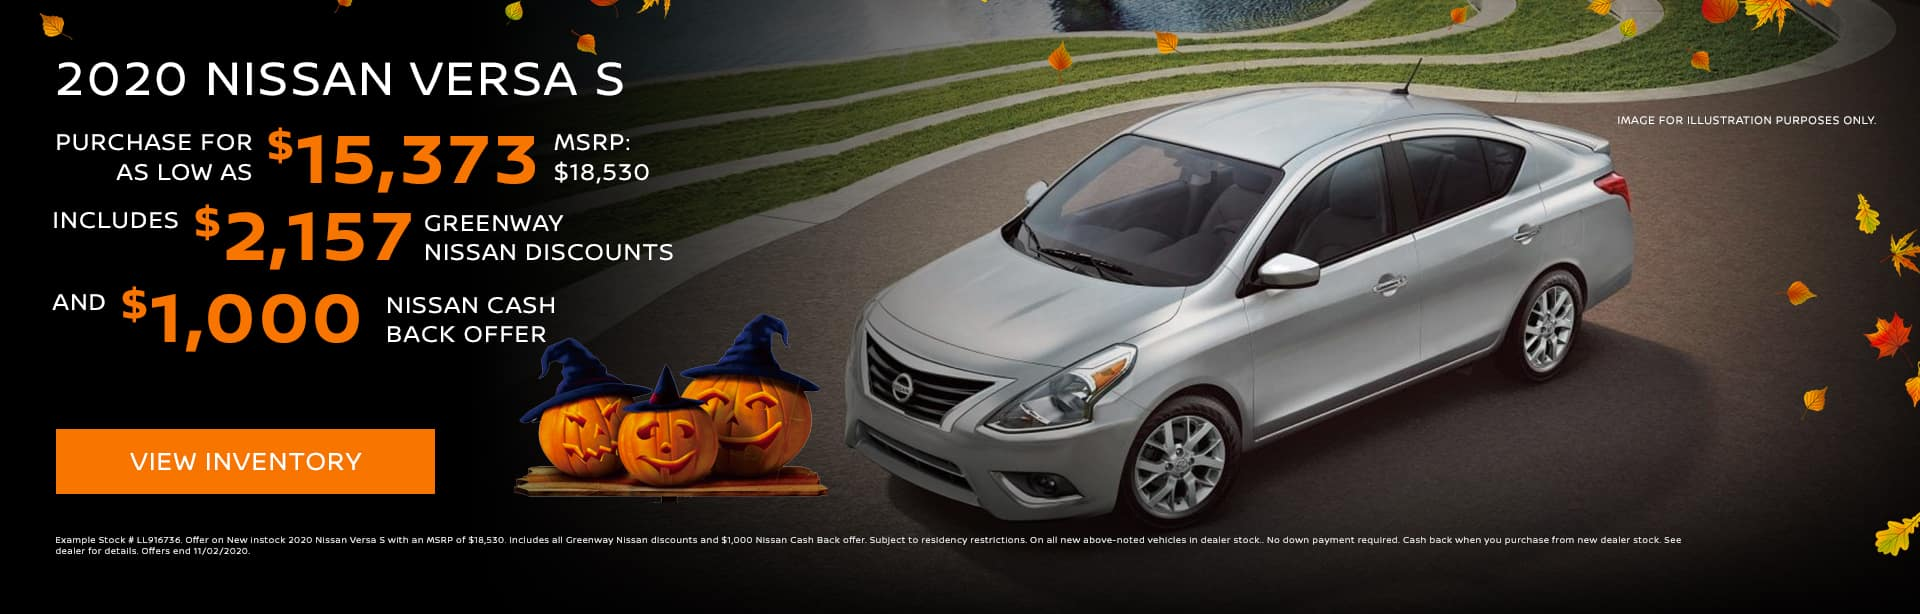 2020 Nissan Versa S Purchase for as low as $15,373! | MSRP: $18,530 Includes $2,157 Greenway Nissan discounts and $1,000 Nissan Cash Back offer